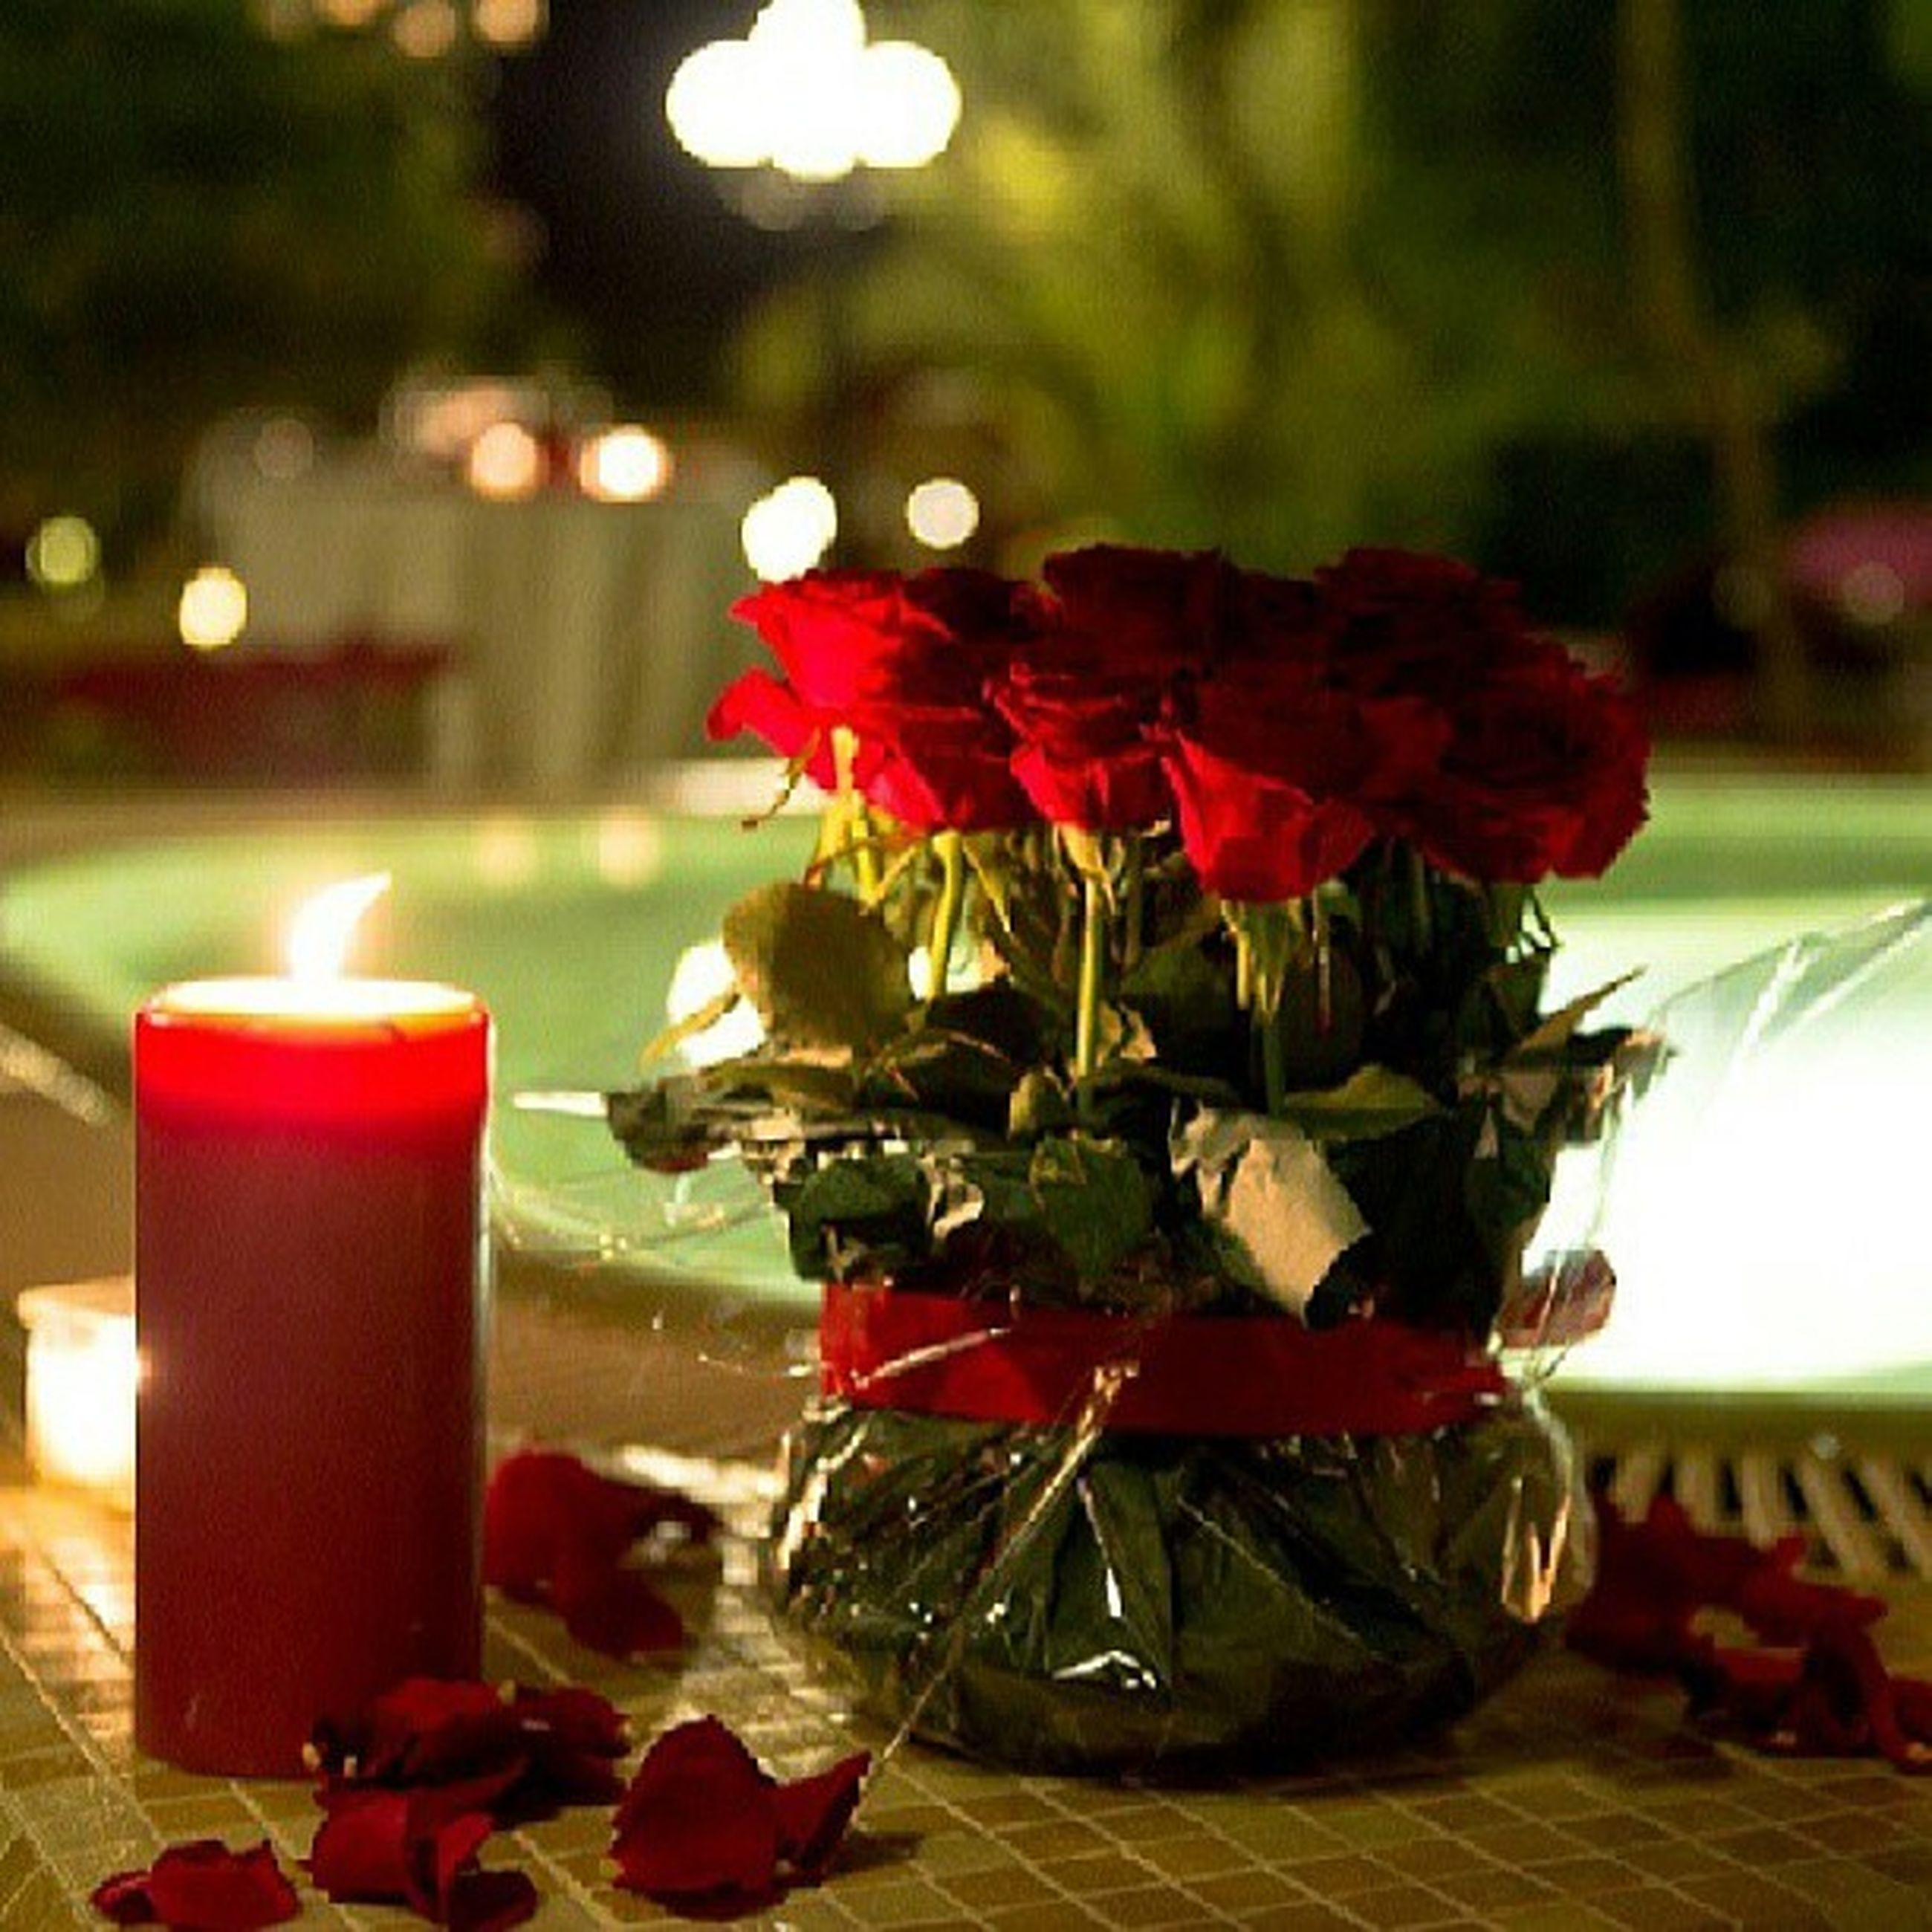 flower, red, indoors, table, vase, focus on foreground, decoration, freshness, potted plant, plant, illuminated, close-up, candle, growth, home interior, fragility, glass - material, flower pot, petal, restaurant